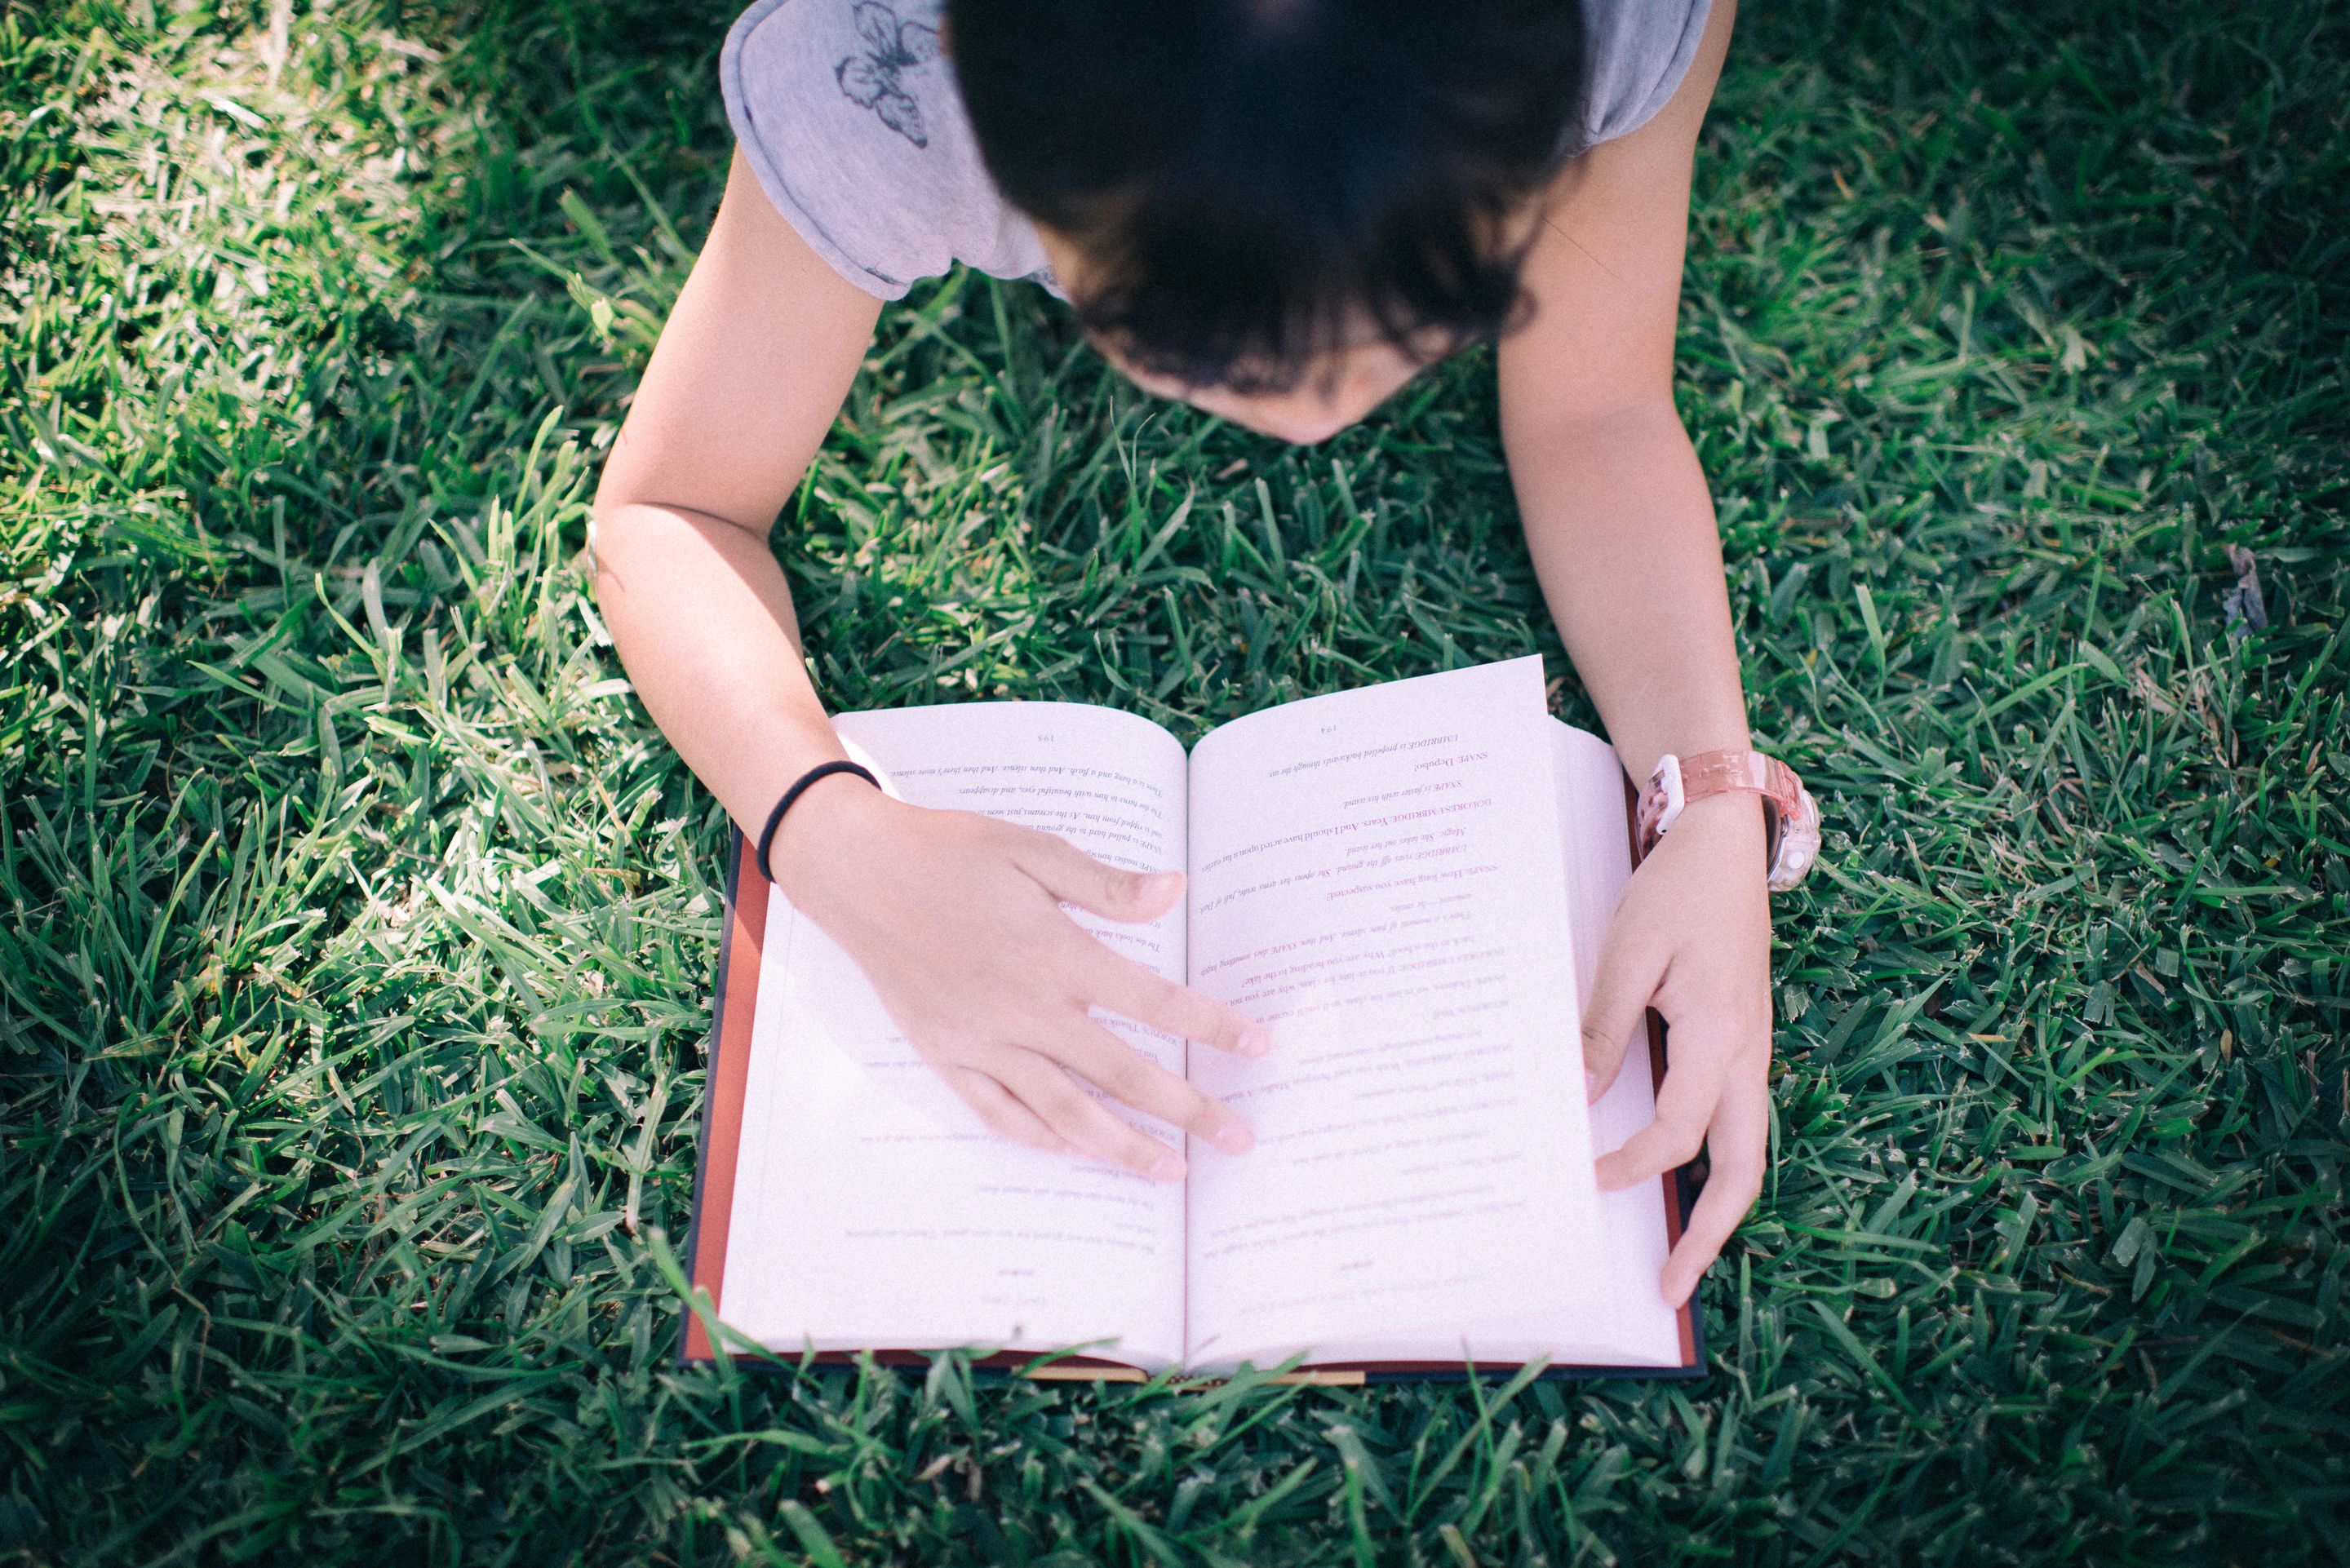 A middle school girl reading a book in a park on the grass